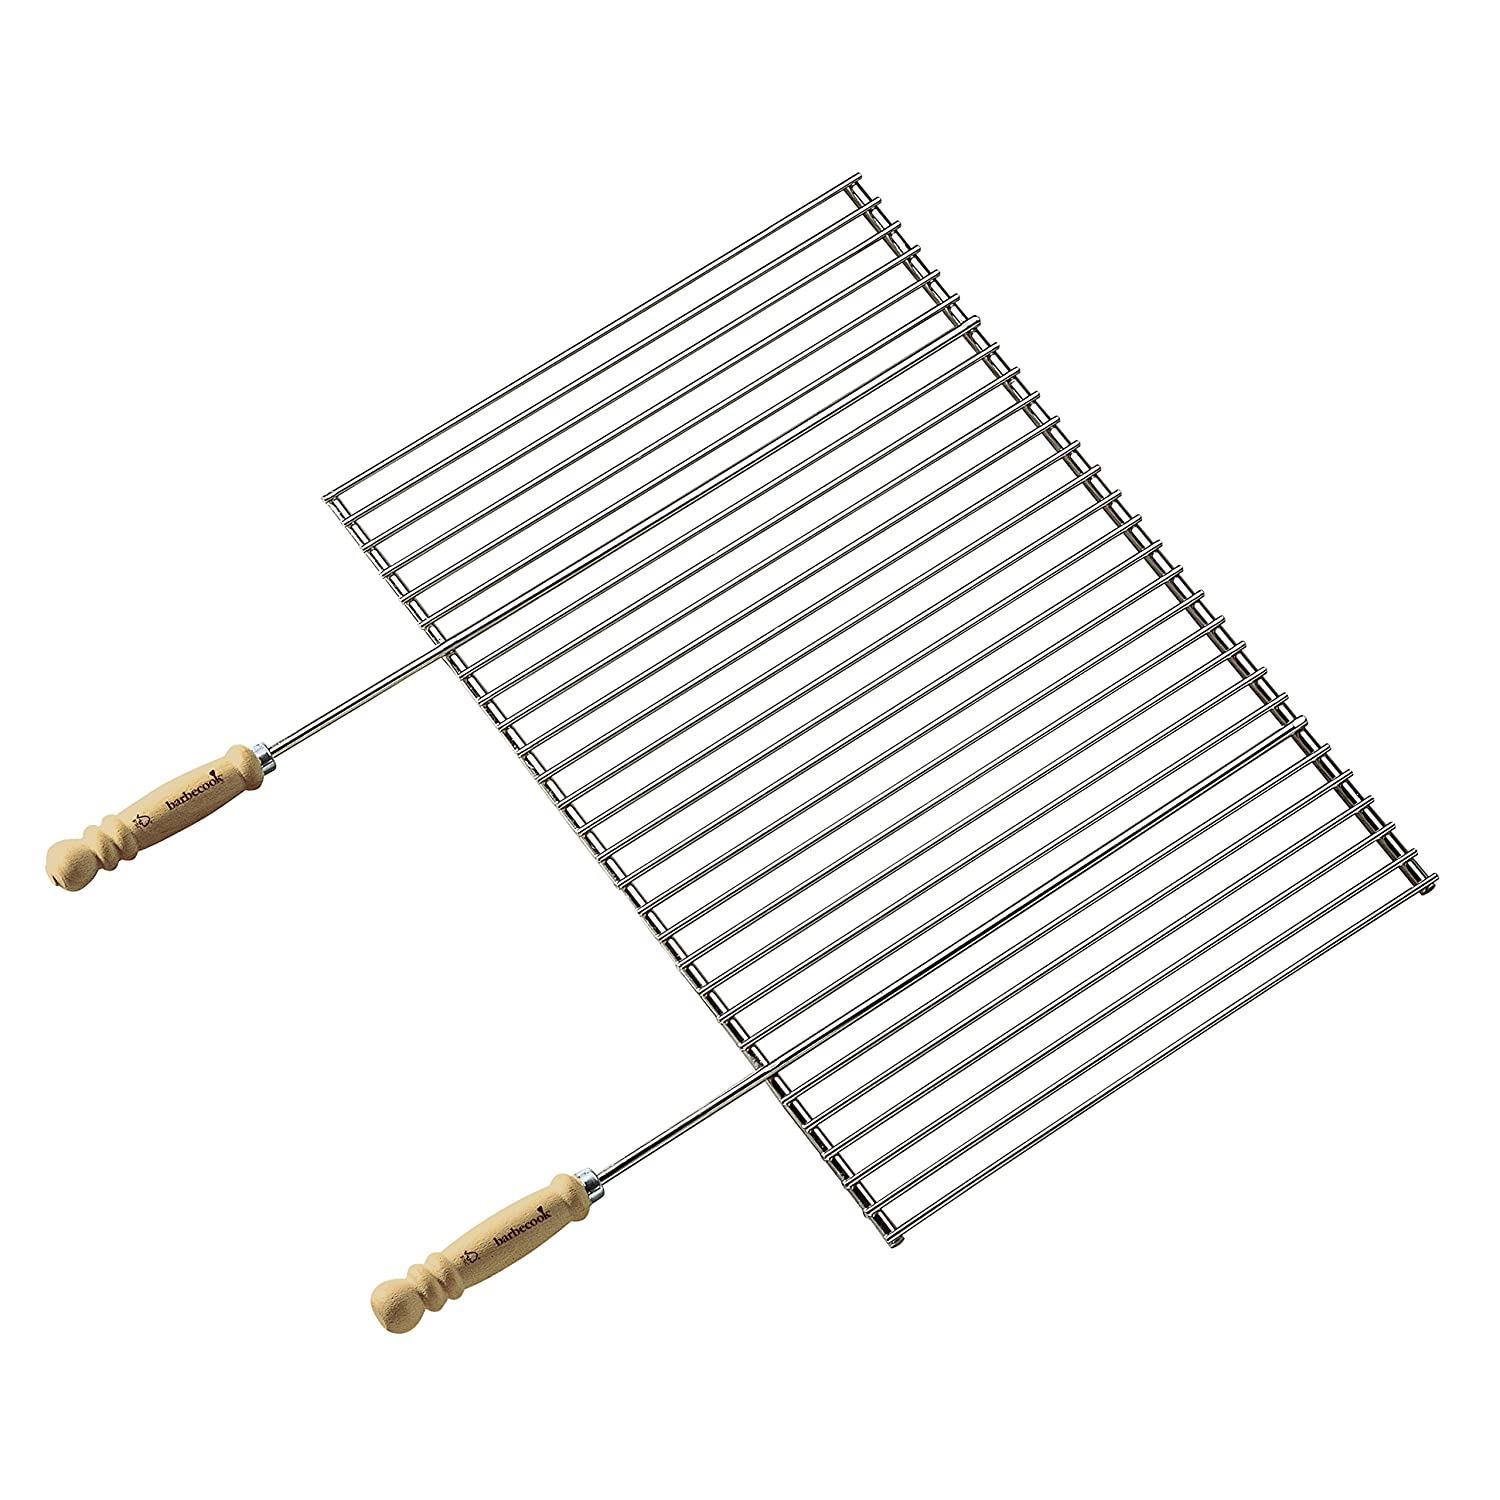 Barbecook 2234060055 Grille Professionale 58.5, argentoo